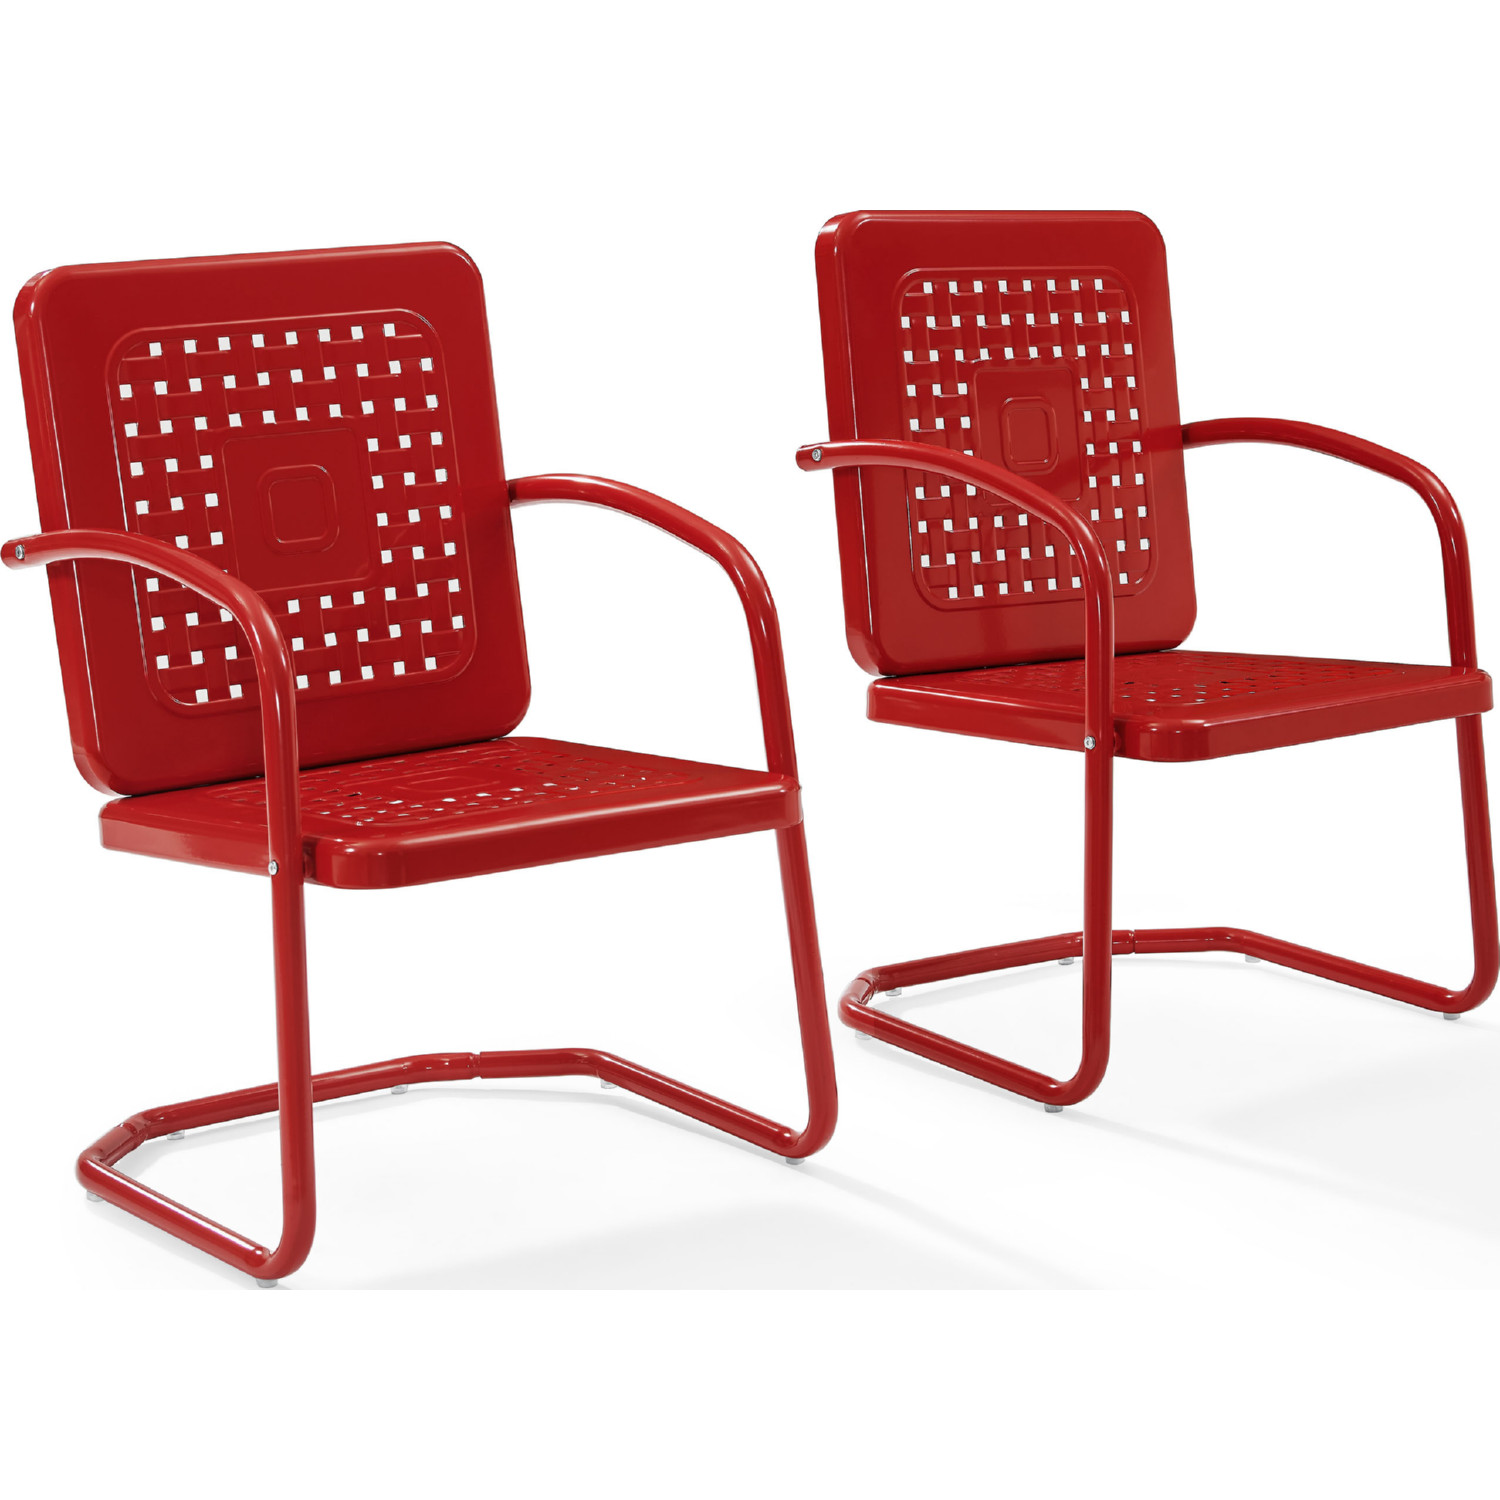 Crosley Bates Outdoor Classic Metal Chair In Red (Set Of 2)